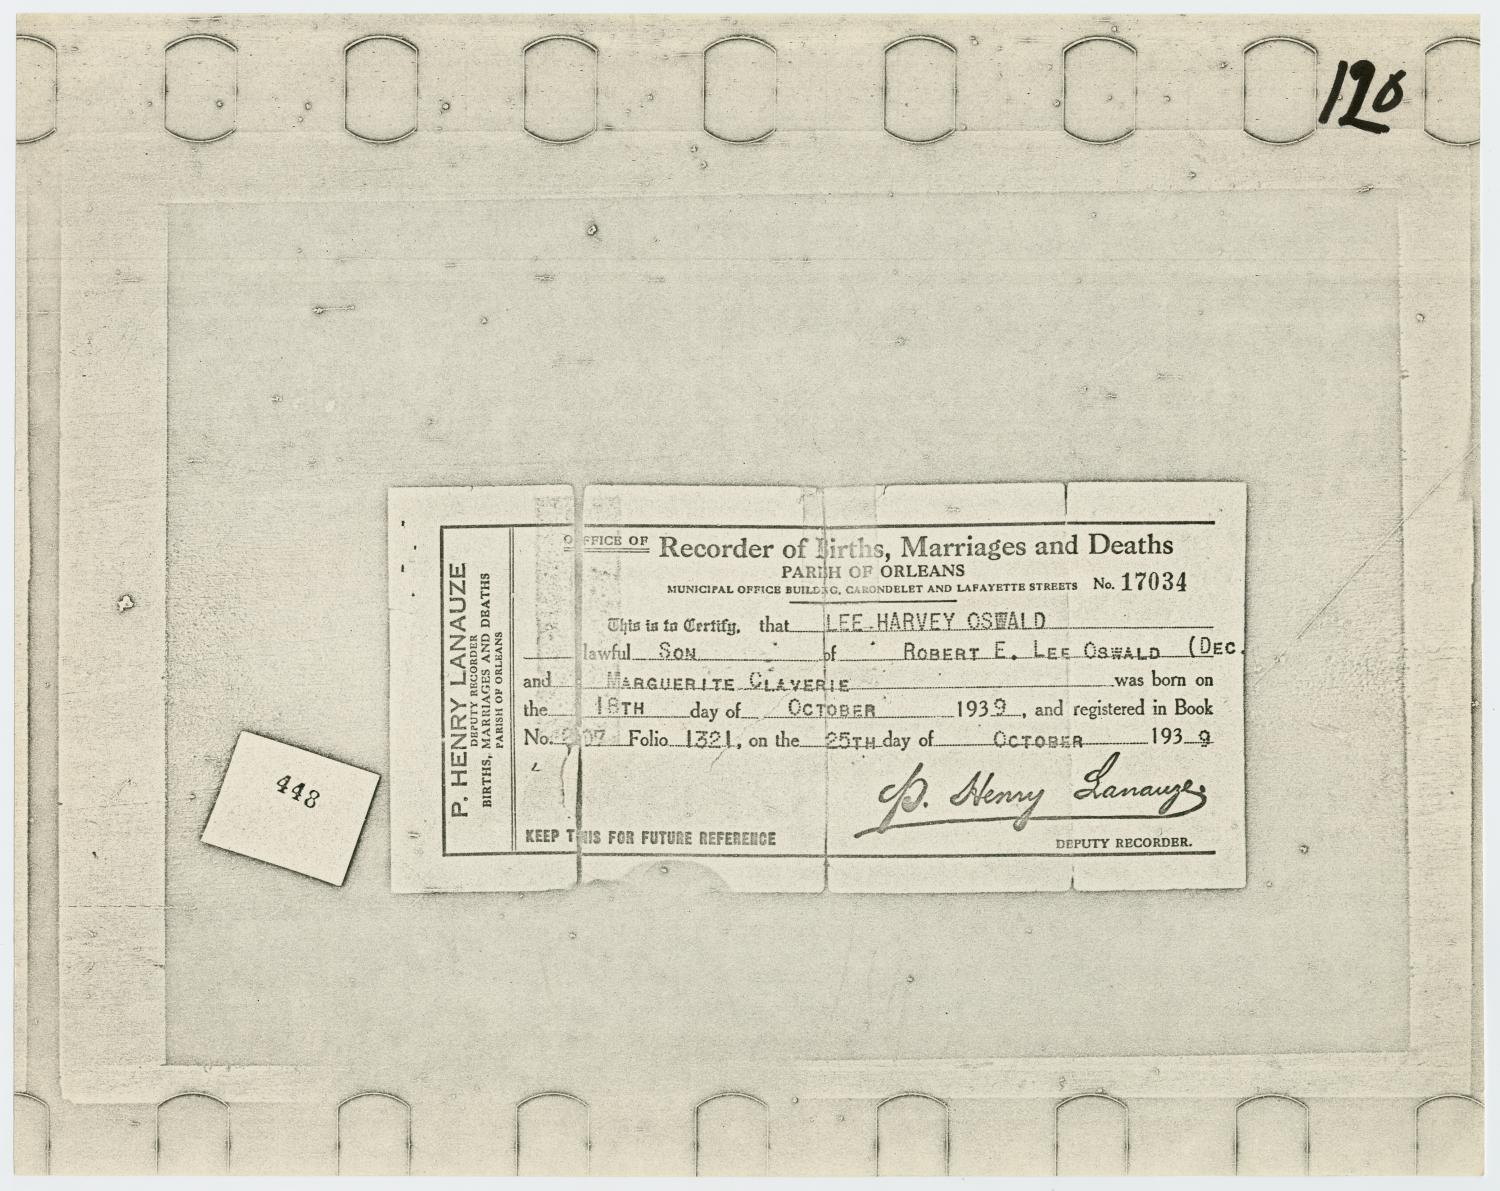 Lee harvey oswalds birth certificate the portal to texas history lee harvey oswalds birth certificate the portal to texas history aiddatafo Choice Image